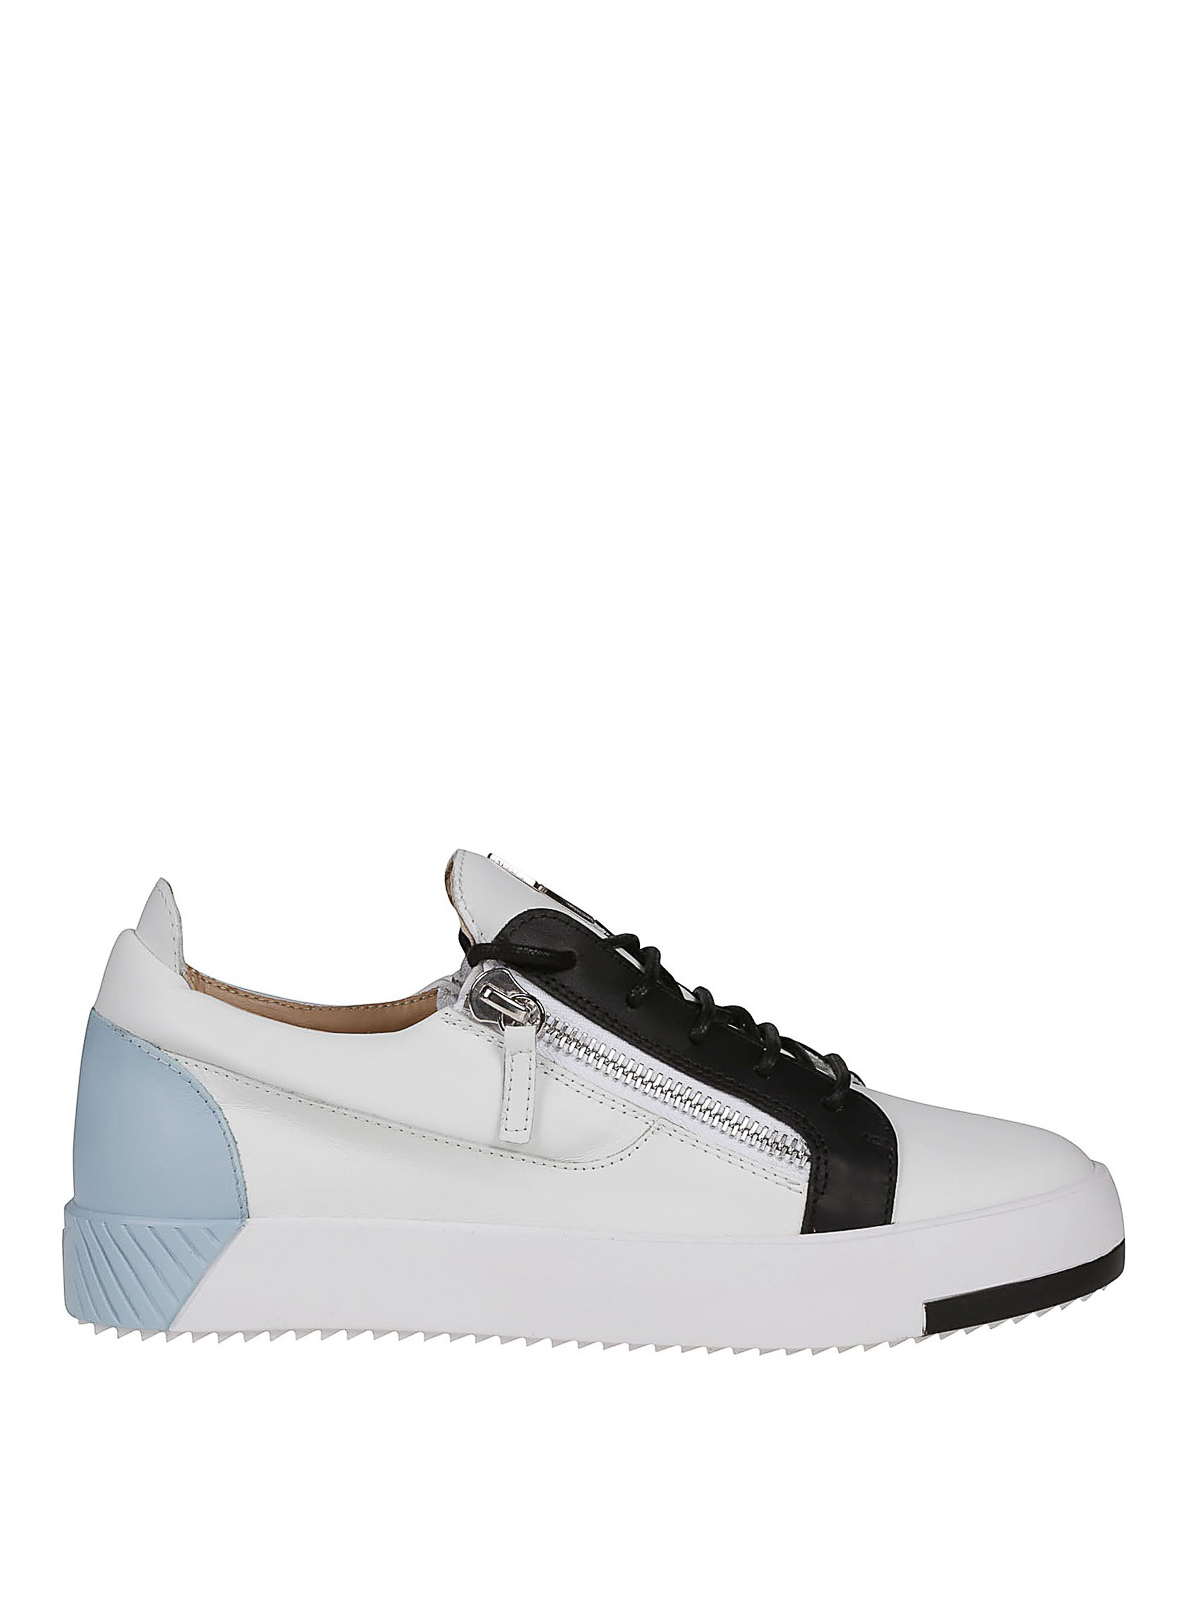 8d470e1f2a546 Giuseppe Zanotti - Frankie colour block leather sneakers - trainers ...